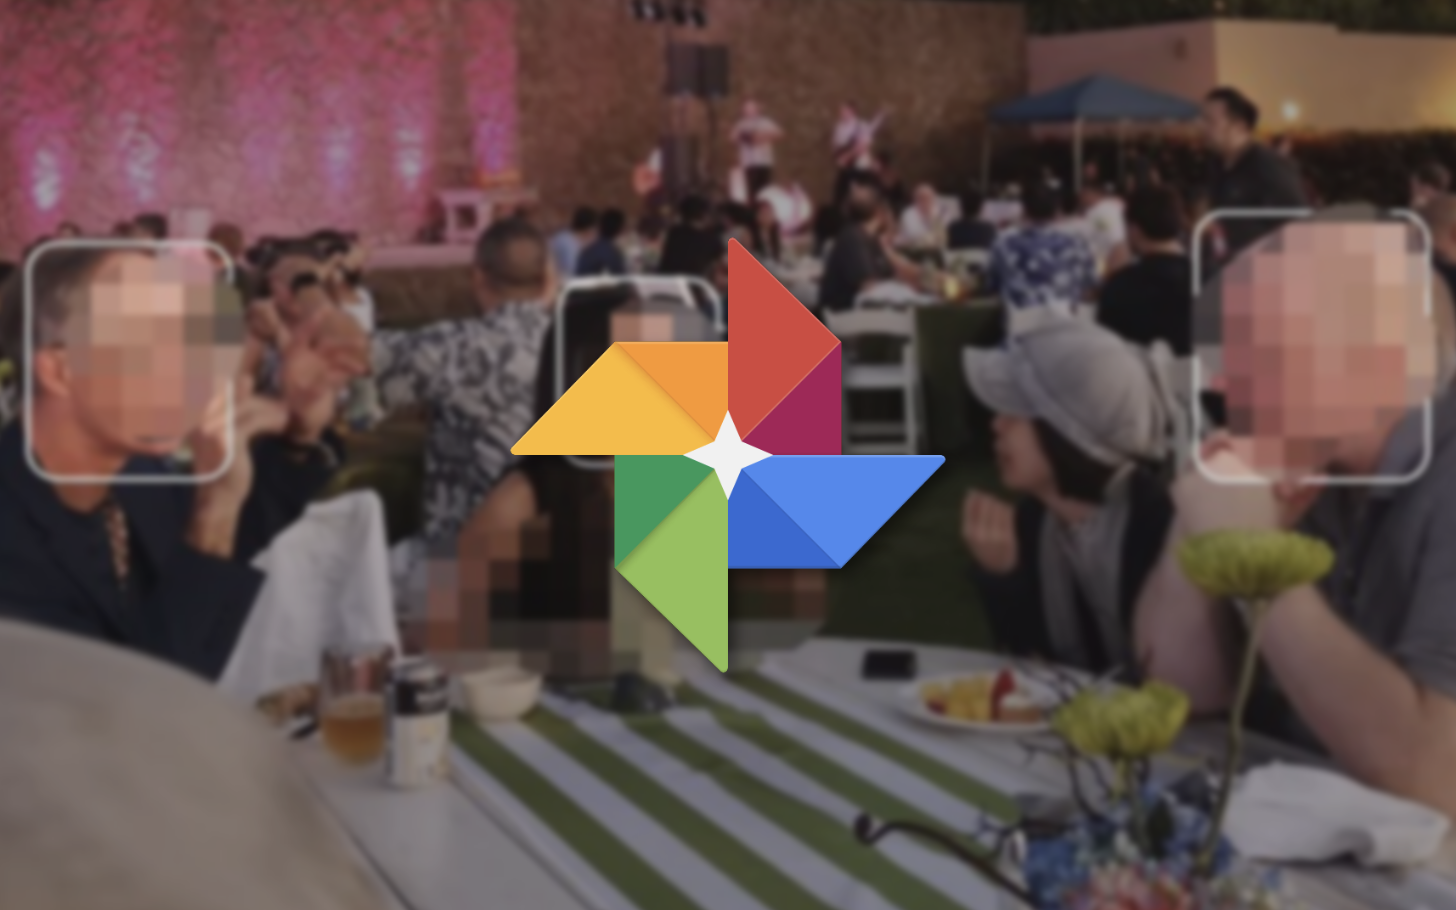 It looks like Google Photos will get manual face tagging in a future update